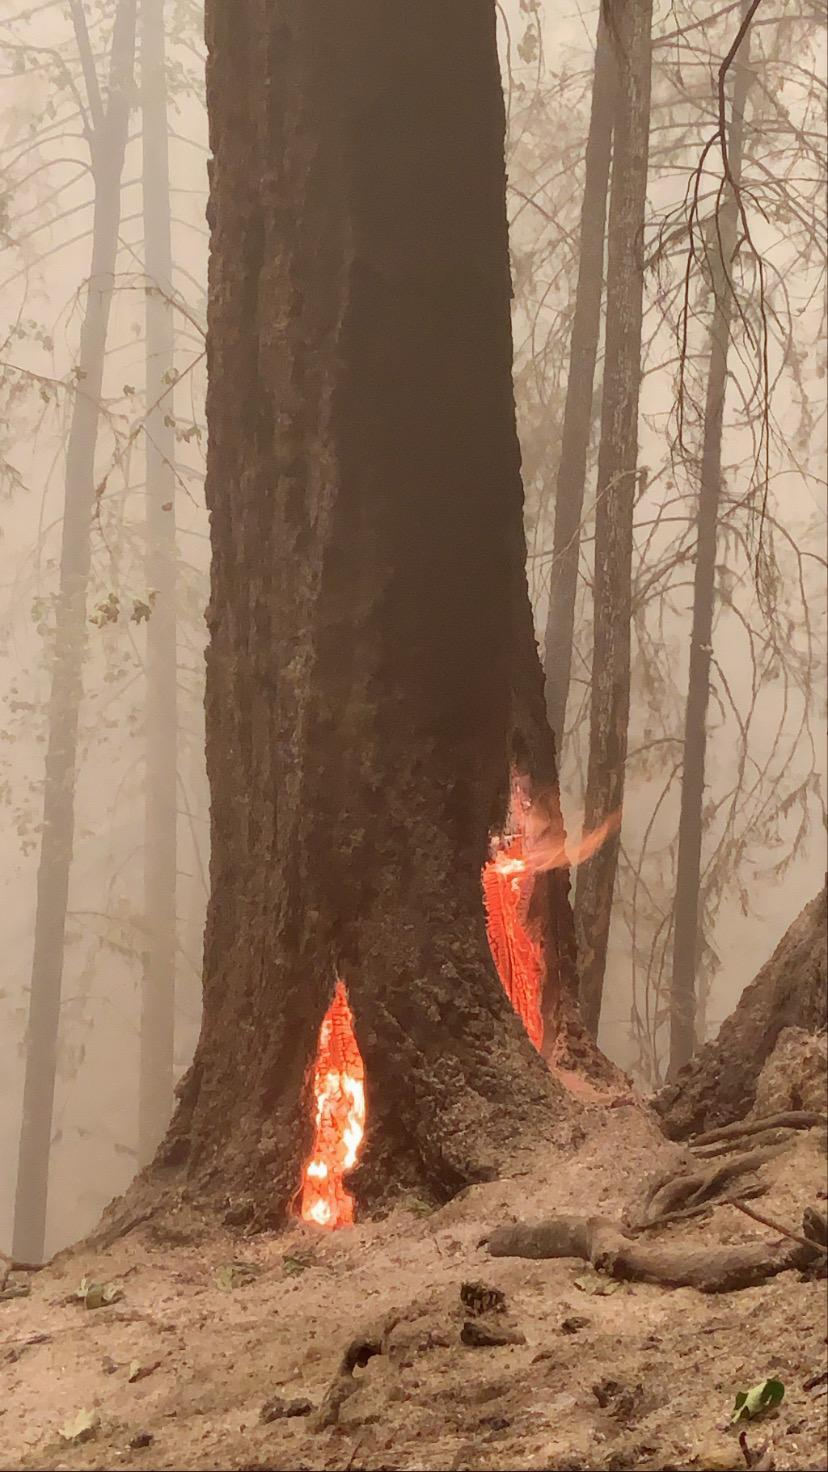 Hazard tree continues to burn in the roots near Highway 22